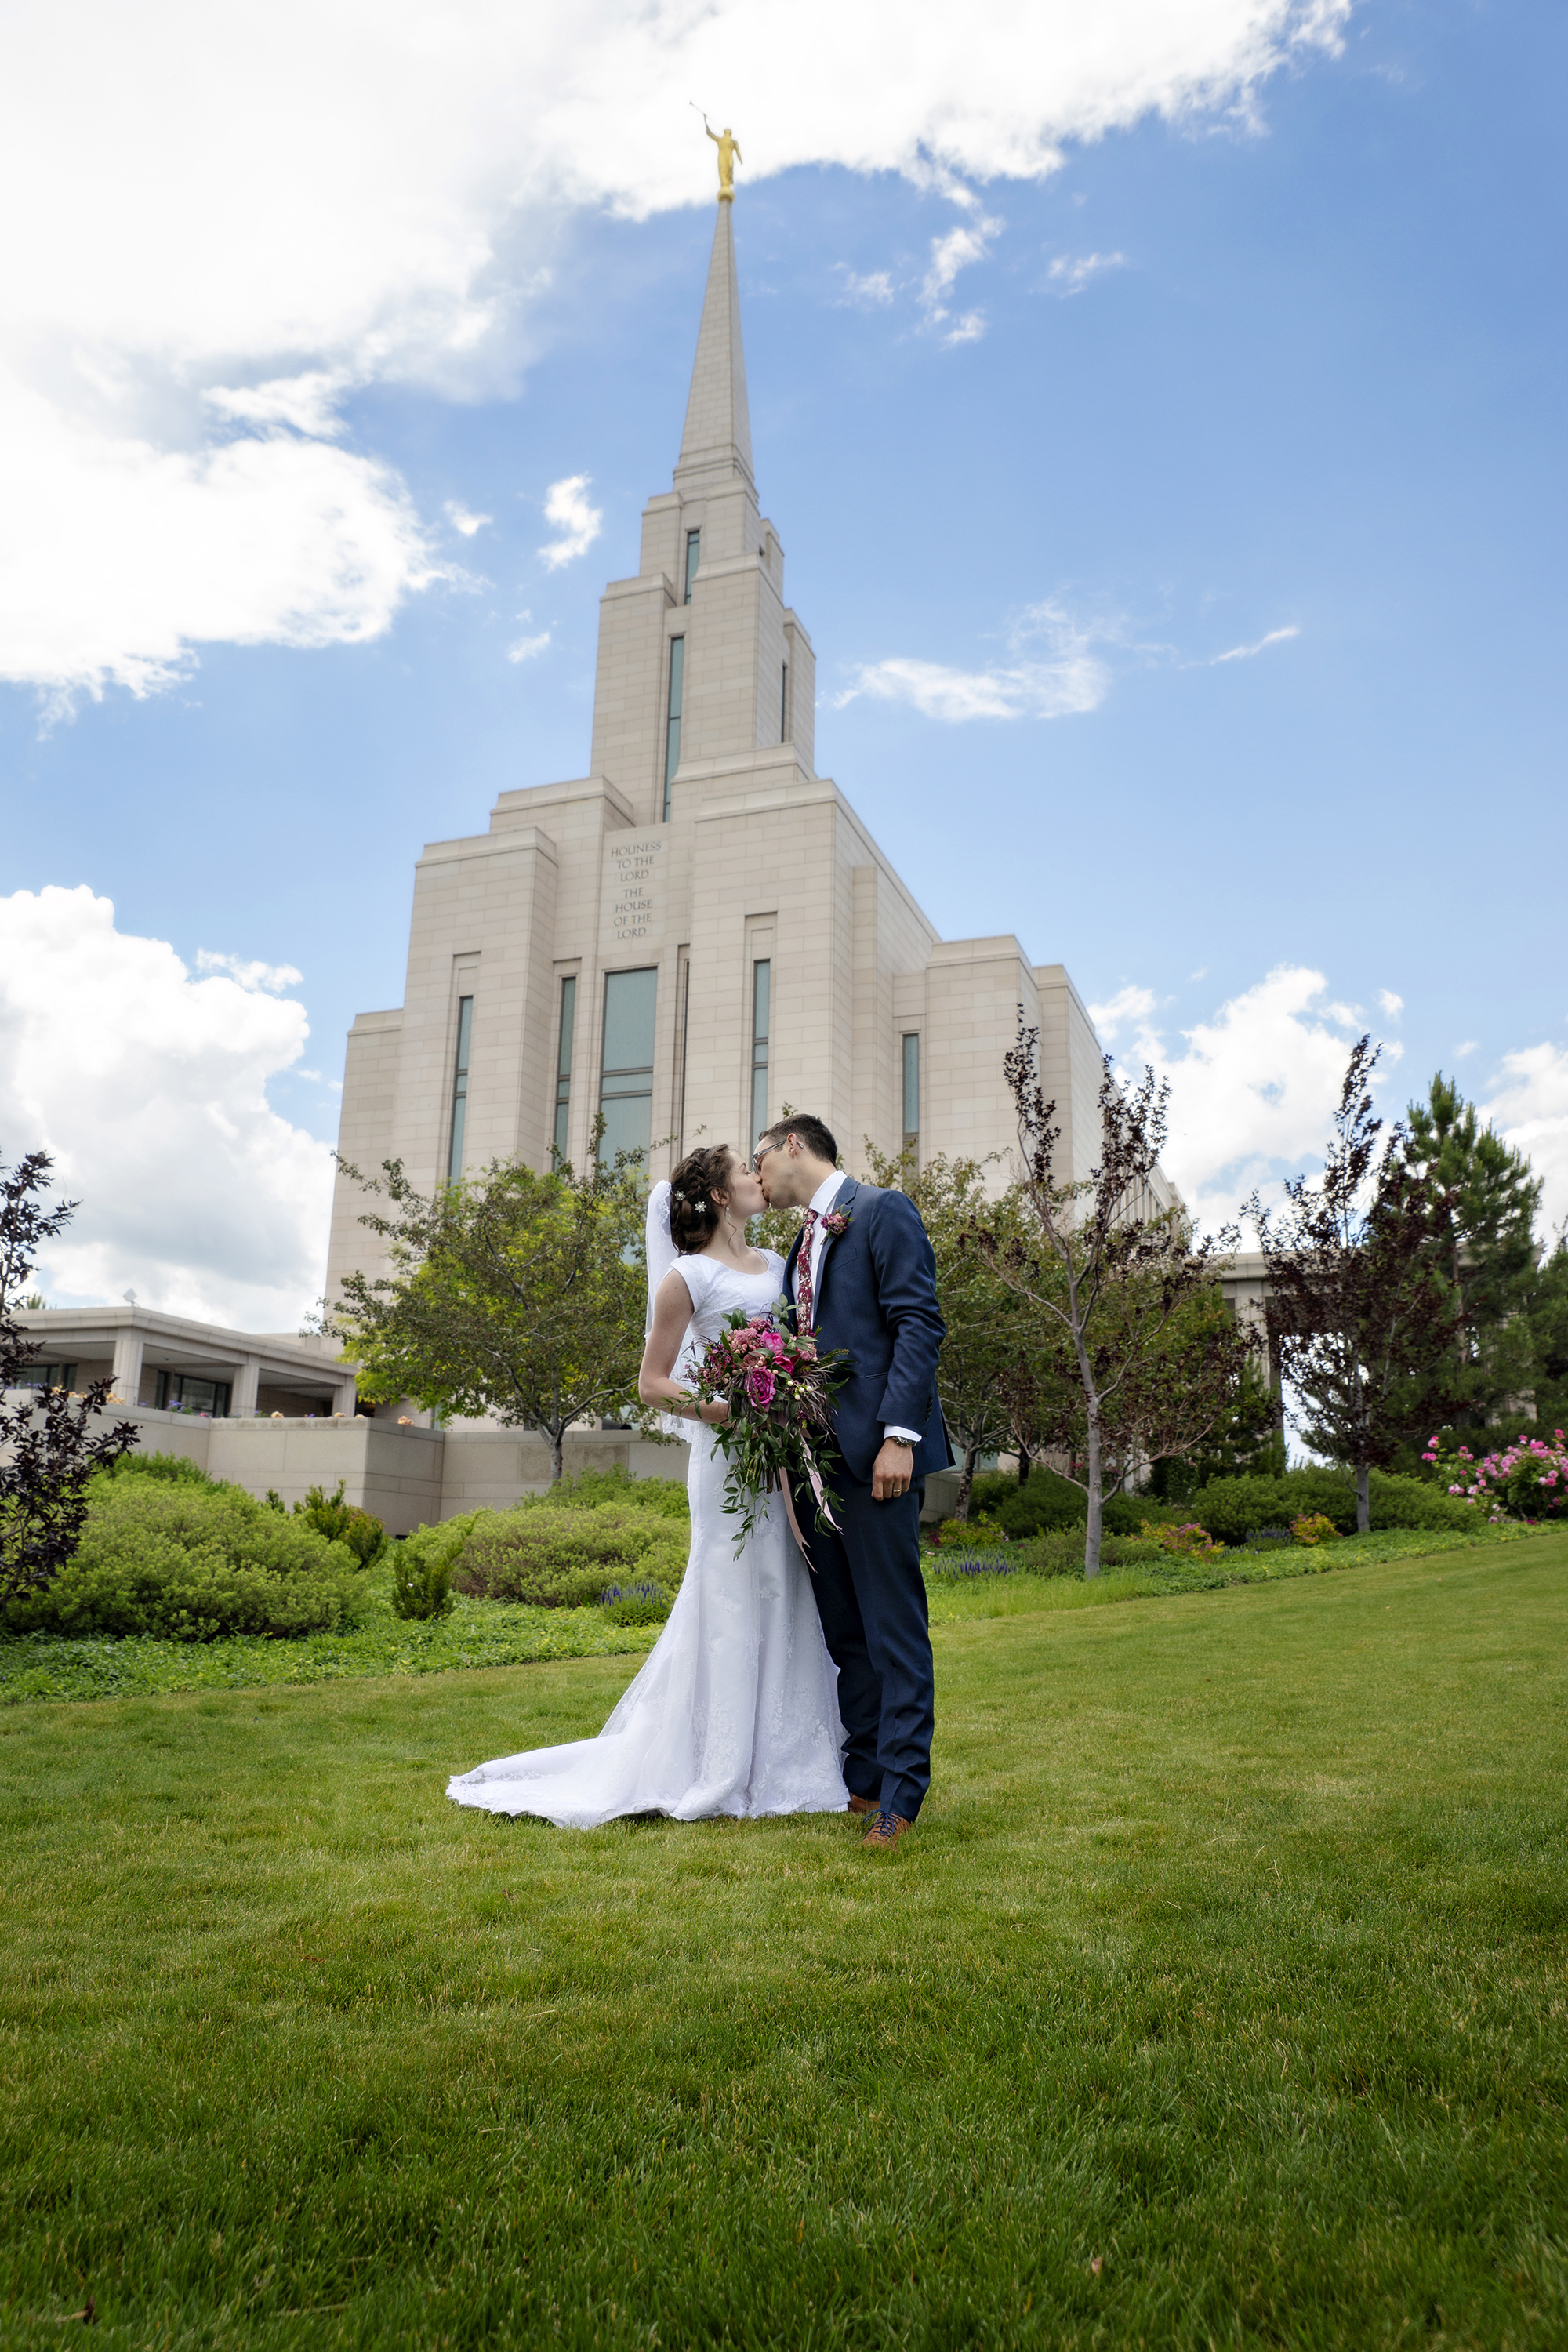 Bride and Groom kissing at Oquirrh Mountain Temple